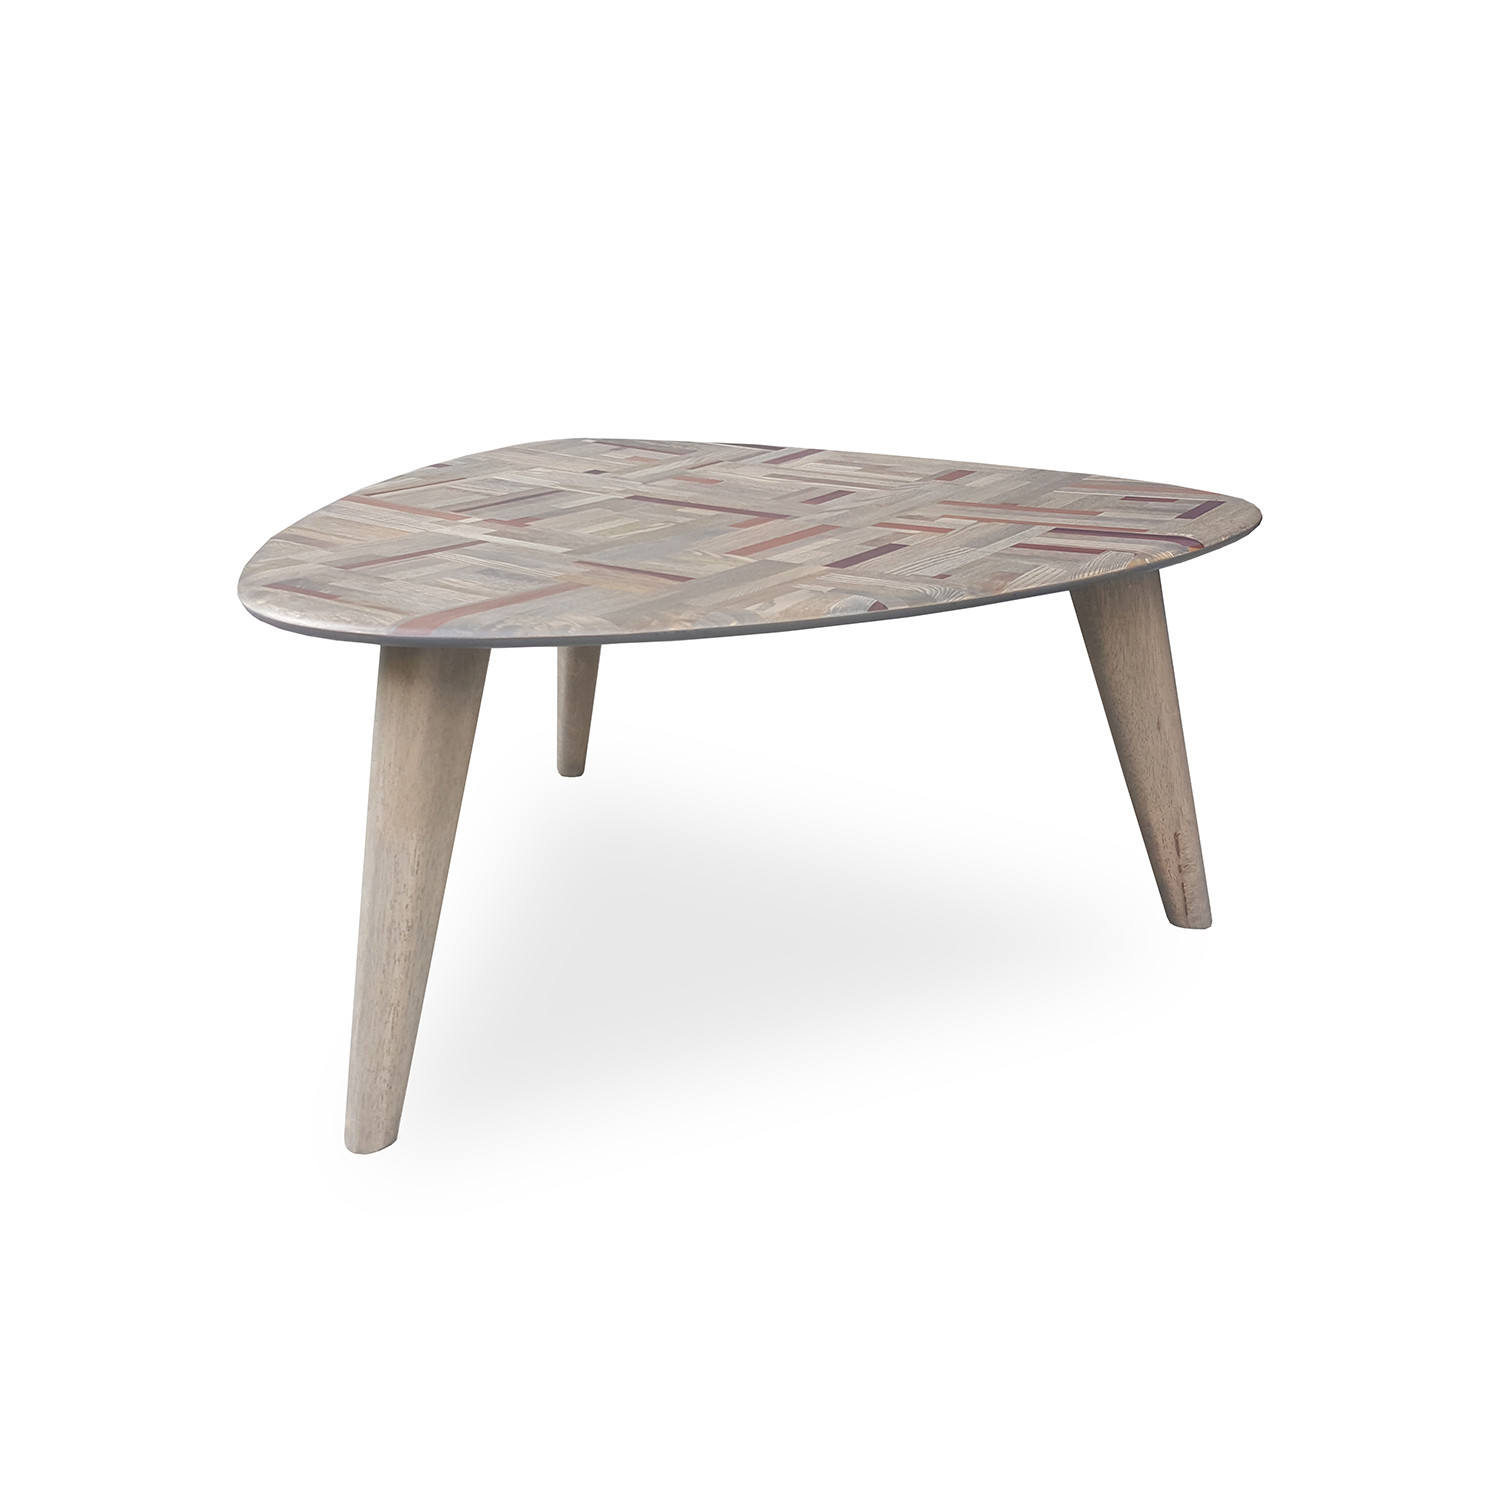 Philos Triangle Coffee Table in Mixwood CFT110 MIX